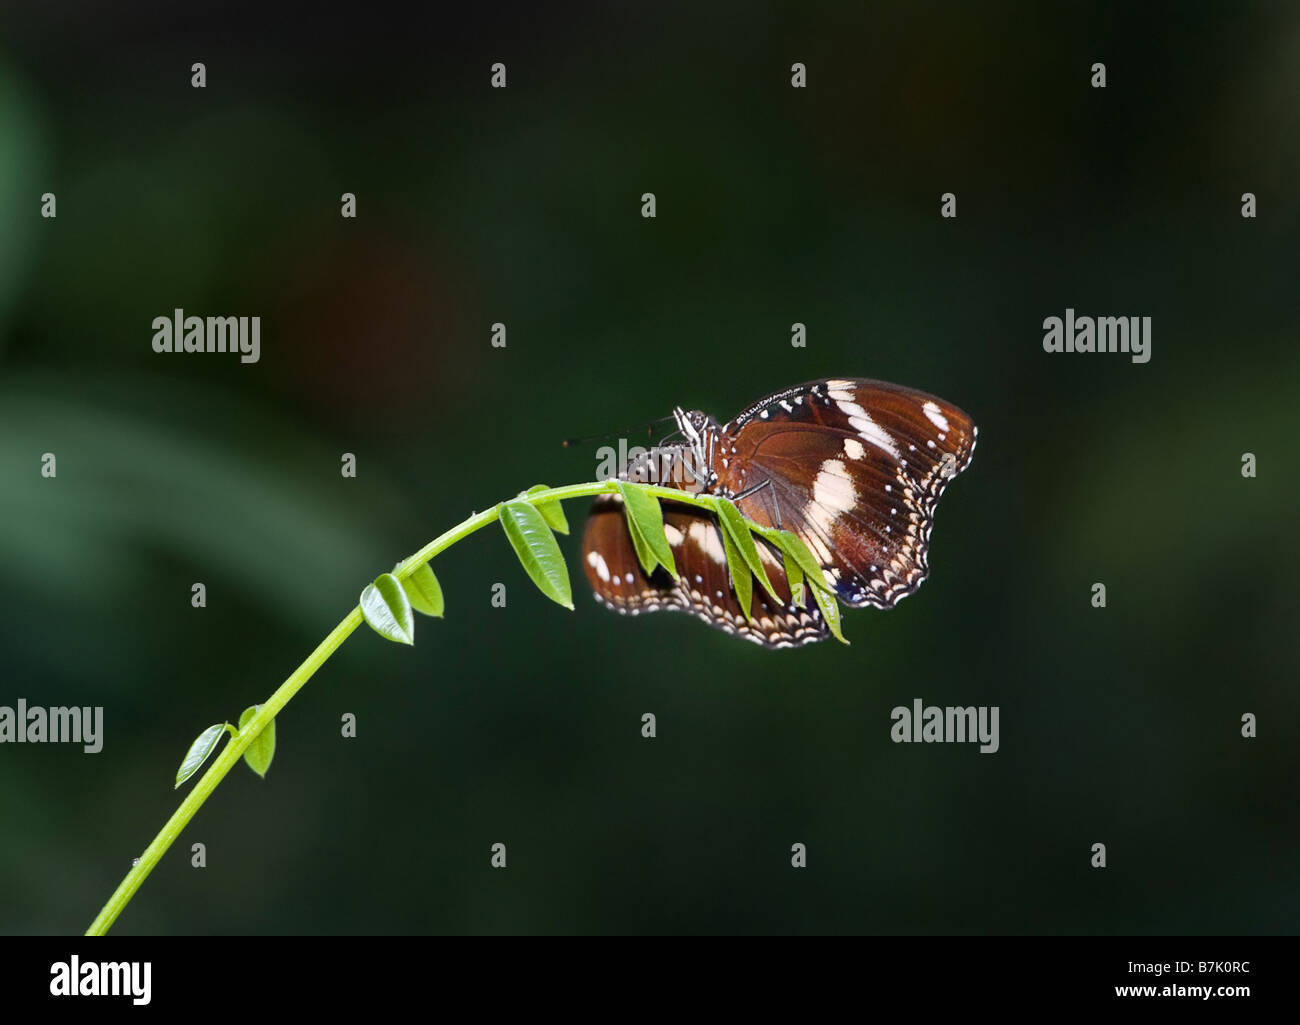 great image of a beautiful butterfly on the end of a branch - Stock Image